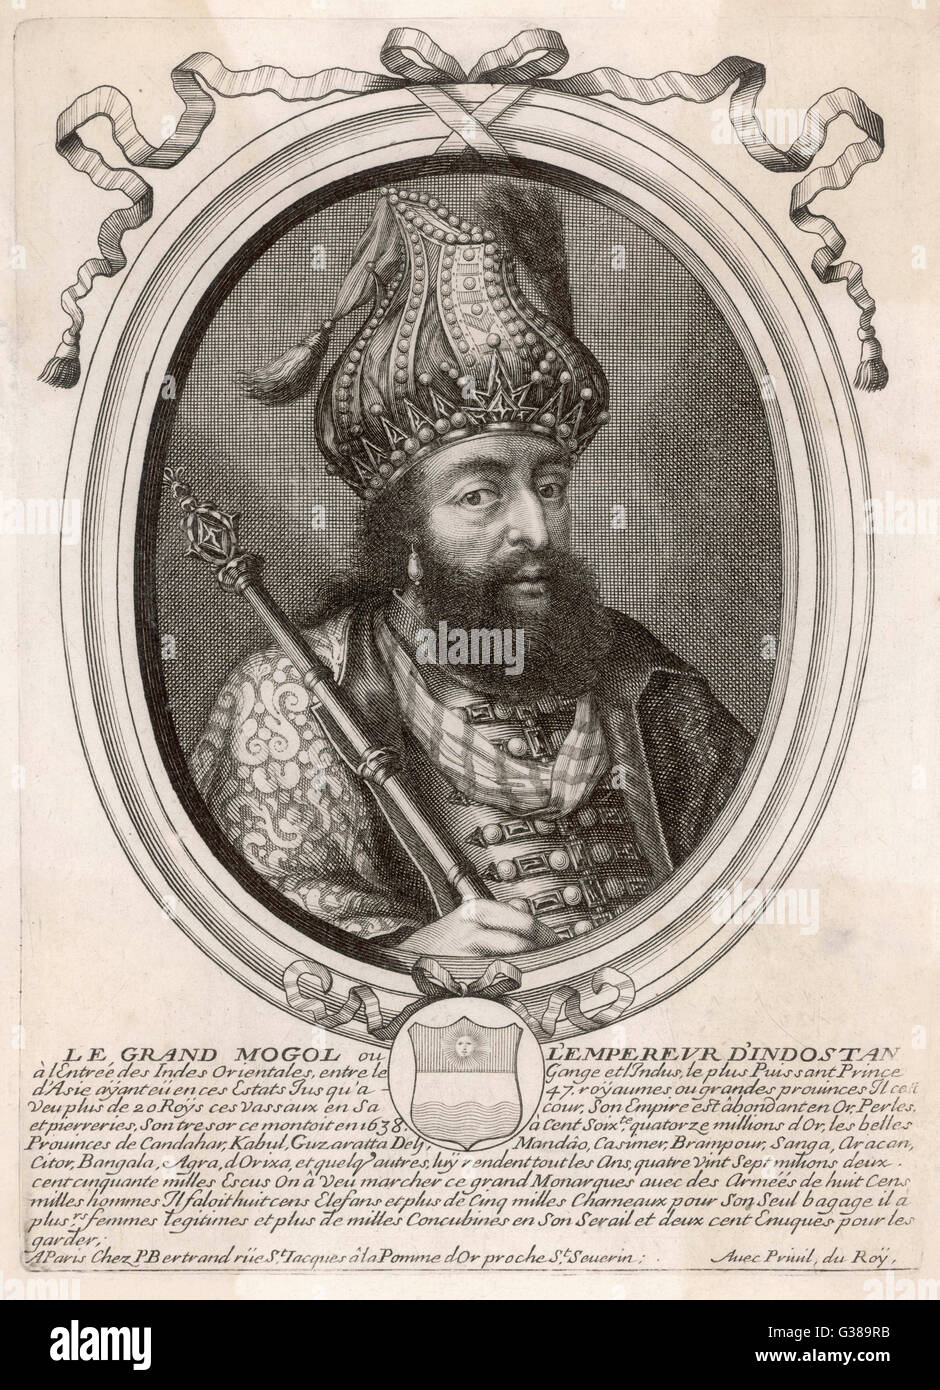 SHAH JAHAN I 'Le Grand Mogol, ou  l'Empereur d'Indostan'  Mughal emperor from 1628 to  1658     - Stock Image